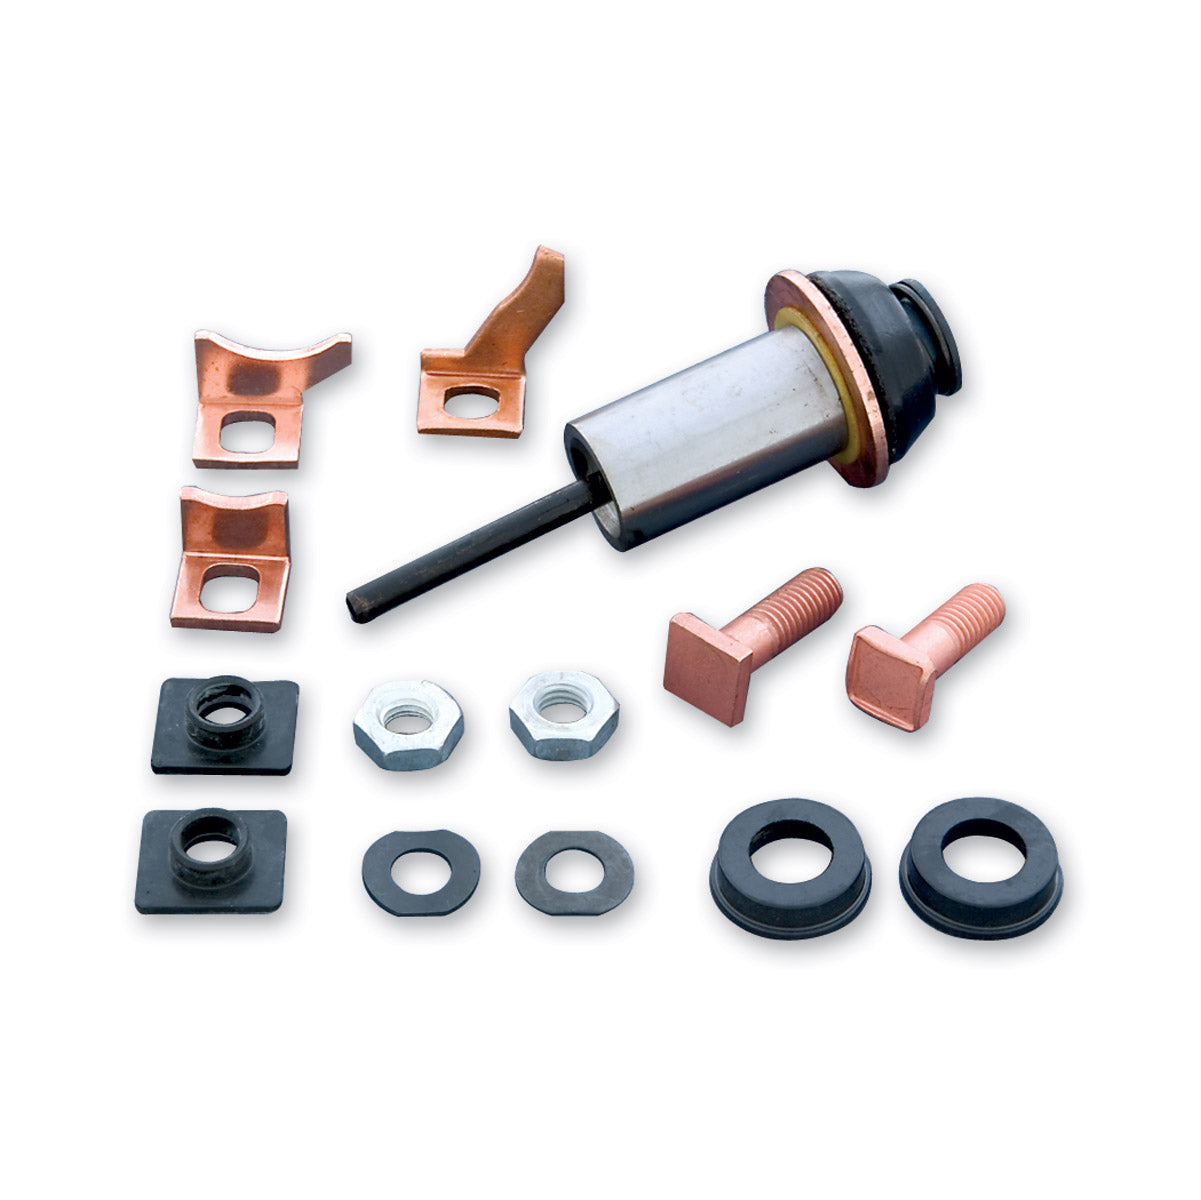 Spyke 431013 - Solenoid Rebuild Kit for 1.2 kW OEM and 1.4 kW Spyke Branded Starters